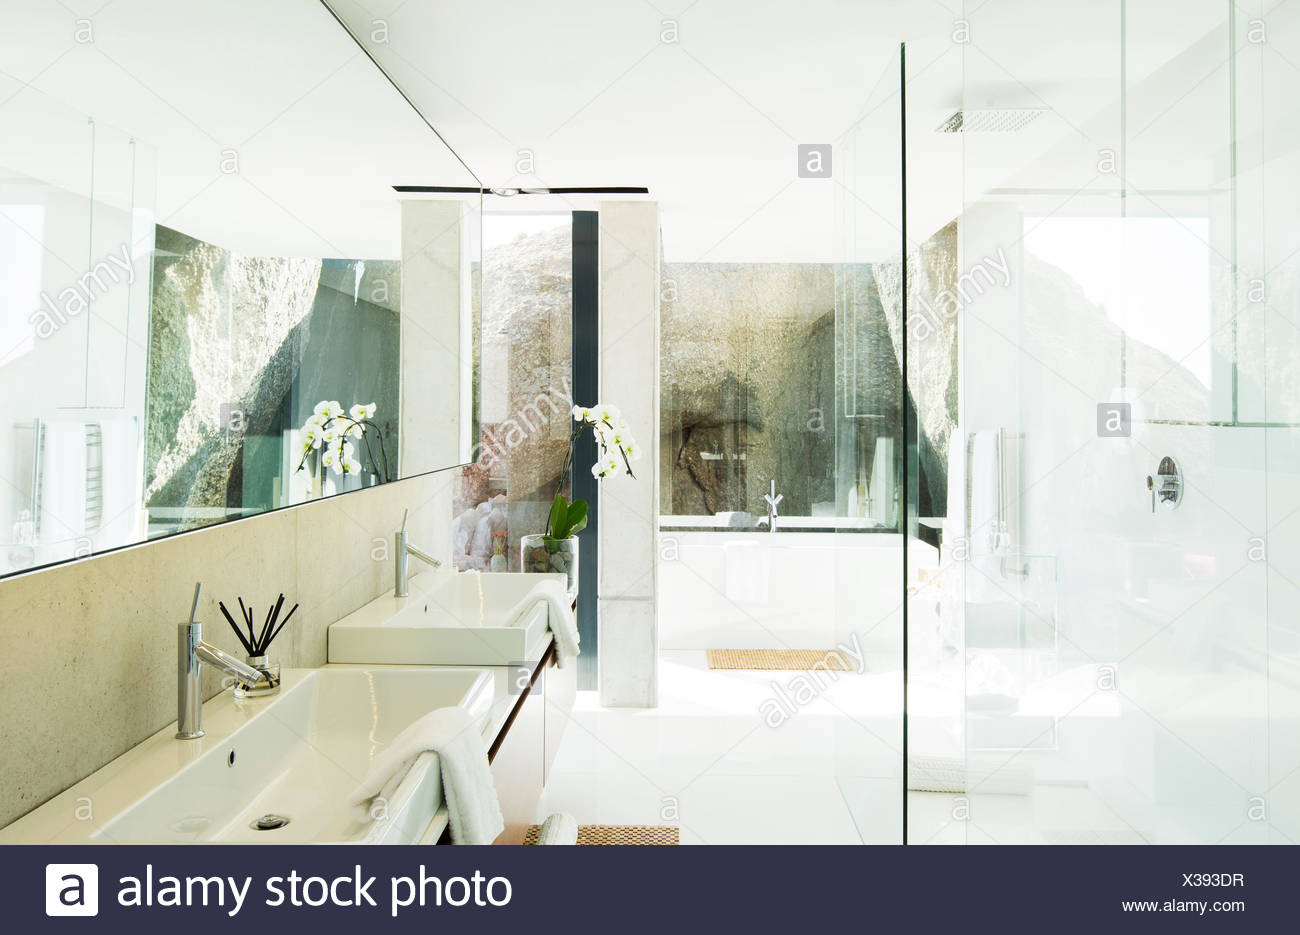 Sinks and bathtub in modern bathroom - Stock Image